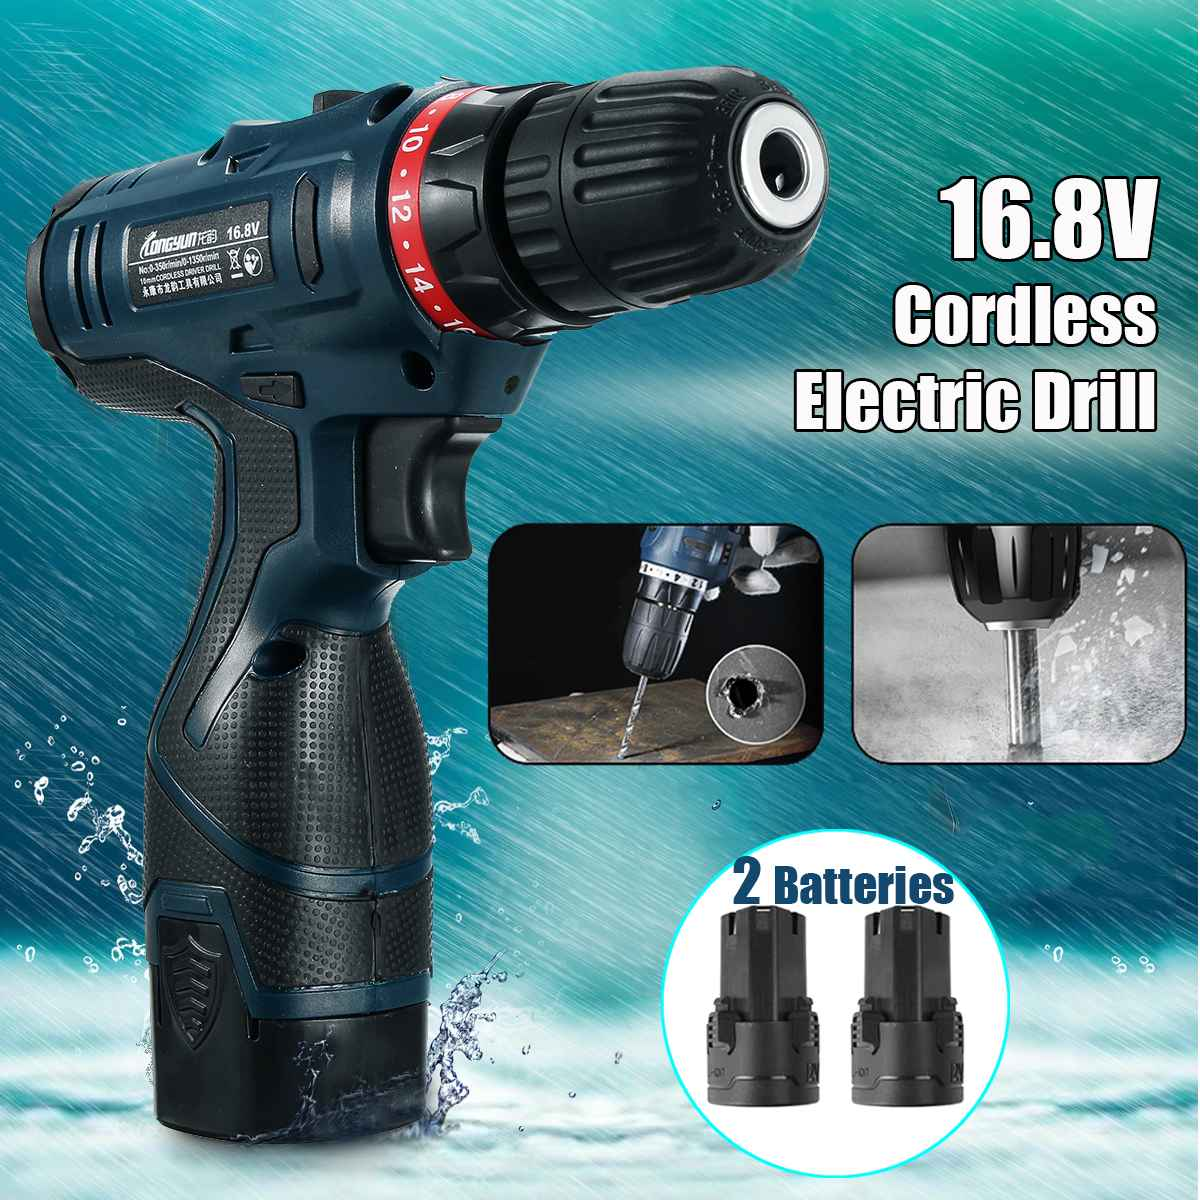 Electric Screwdriver Cordless Drill Impact Drill Power Mini Driver 16.8V Lithium-Ion Battery LED 10mm 2-Speed Power Tools spta 4 100mm genuine wool buffing ball polishing pad ball hex shank turn power drill or impact driver high speed polisher